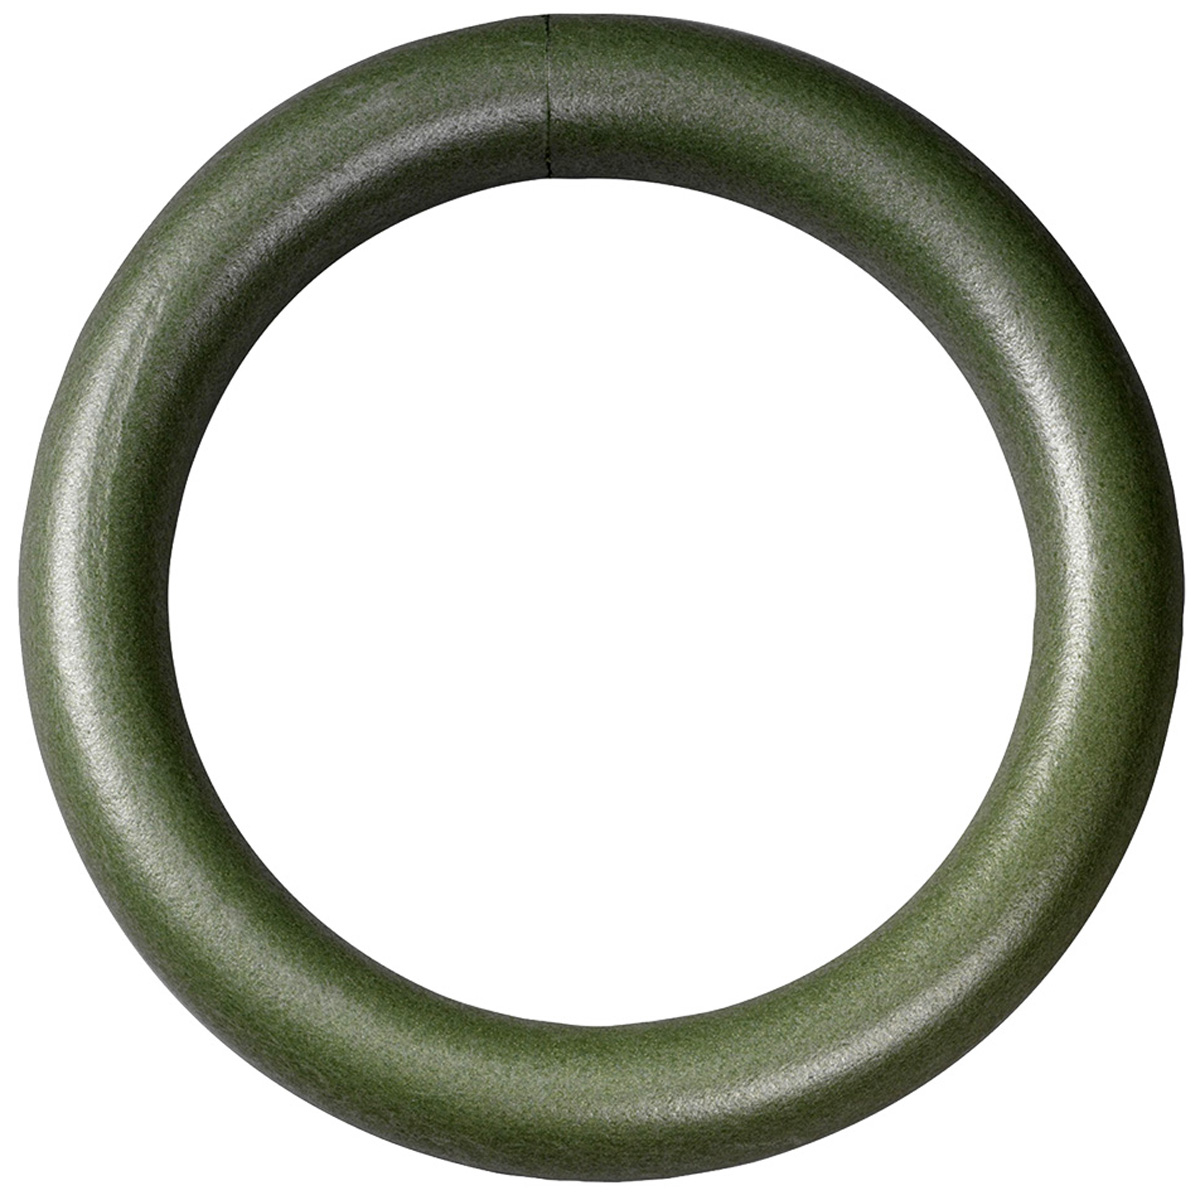 Image result for green styrofoam wreath forms sizes